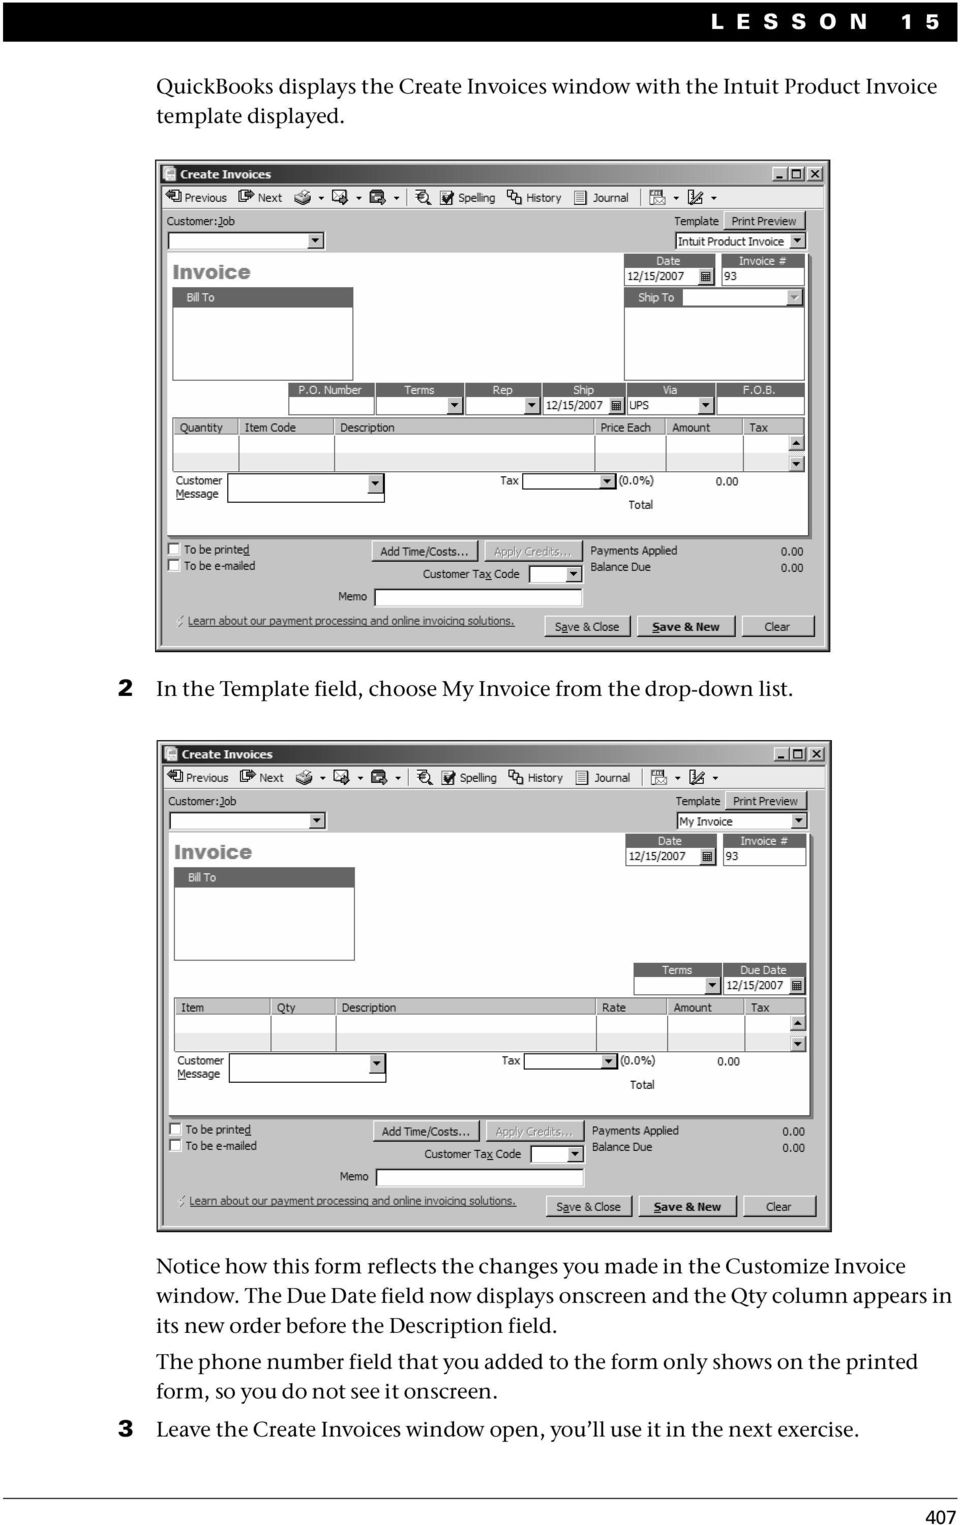 Notice how this form reflects the changes you made in the Customize Invoice window.